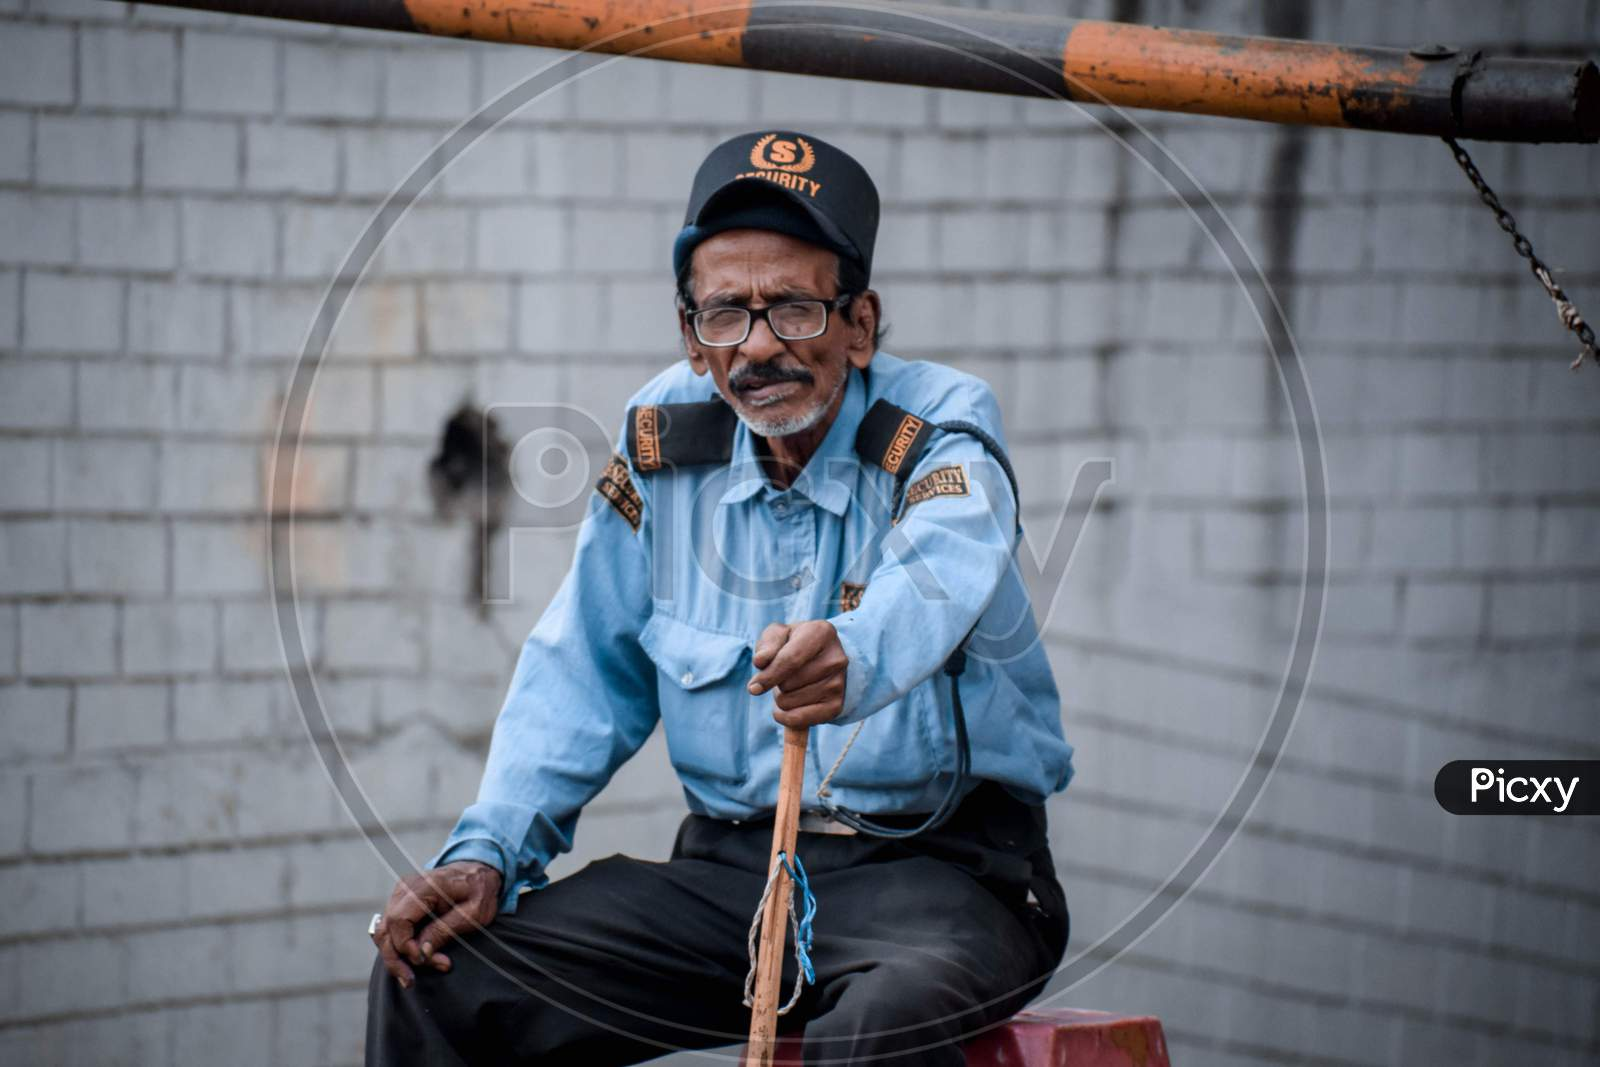 Image of An Old Man As Security Guard-XA495164-Picxy